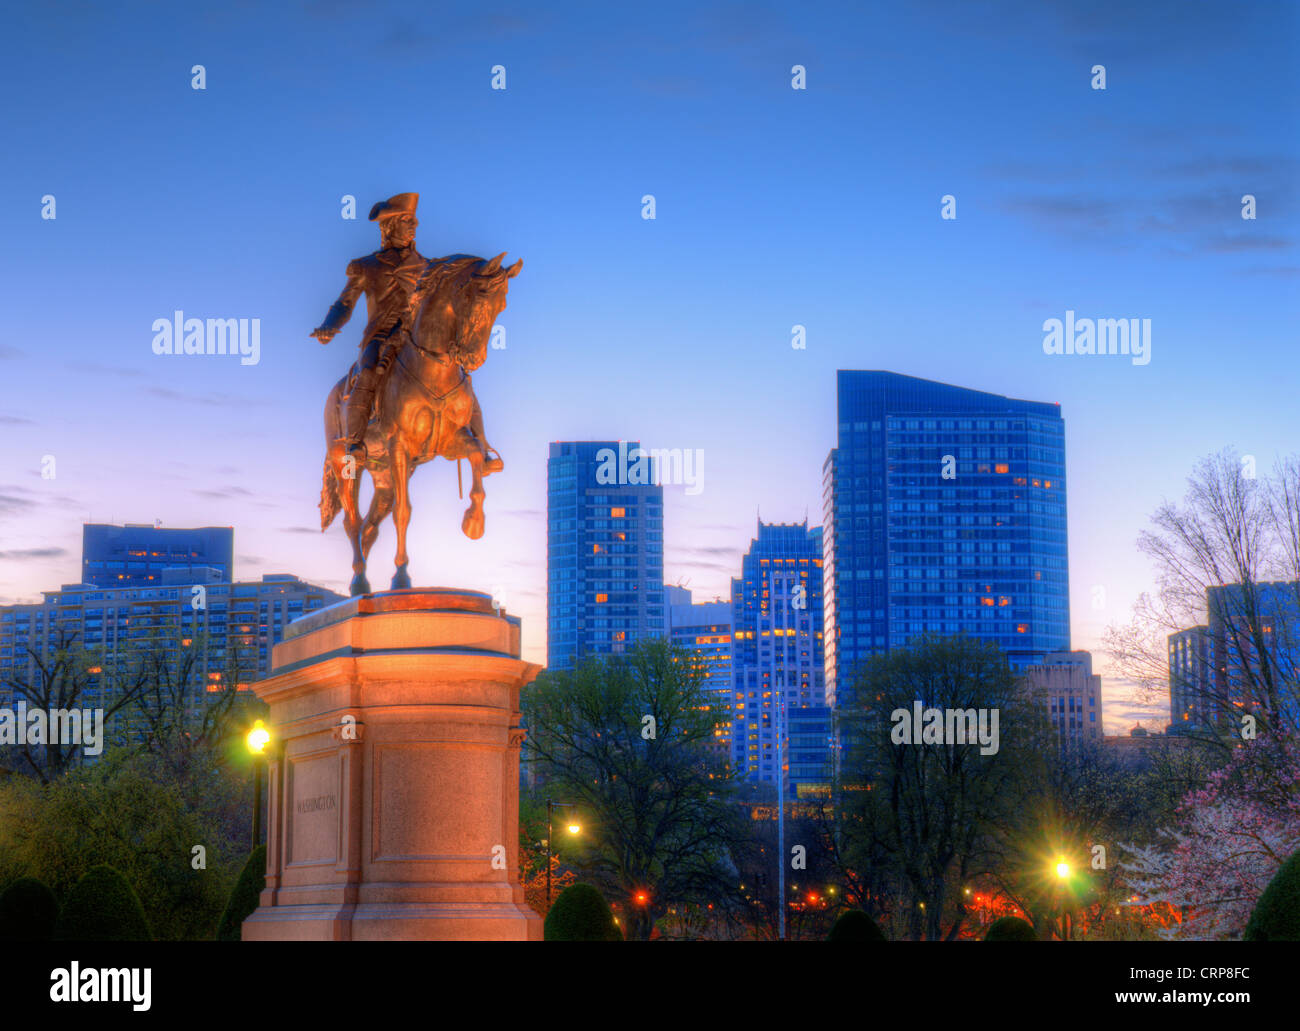 Estatua Ecuestre de George Washington en el jardín público de Boston, Massachusetts. Imagen De Stock